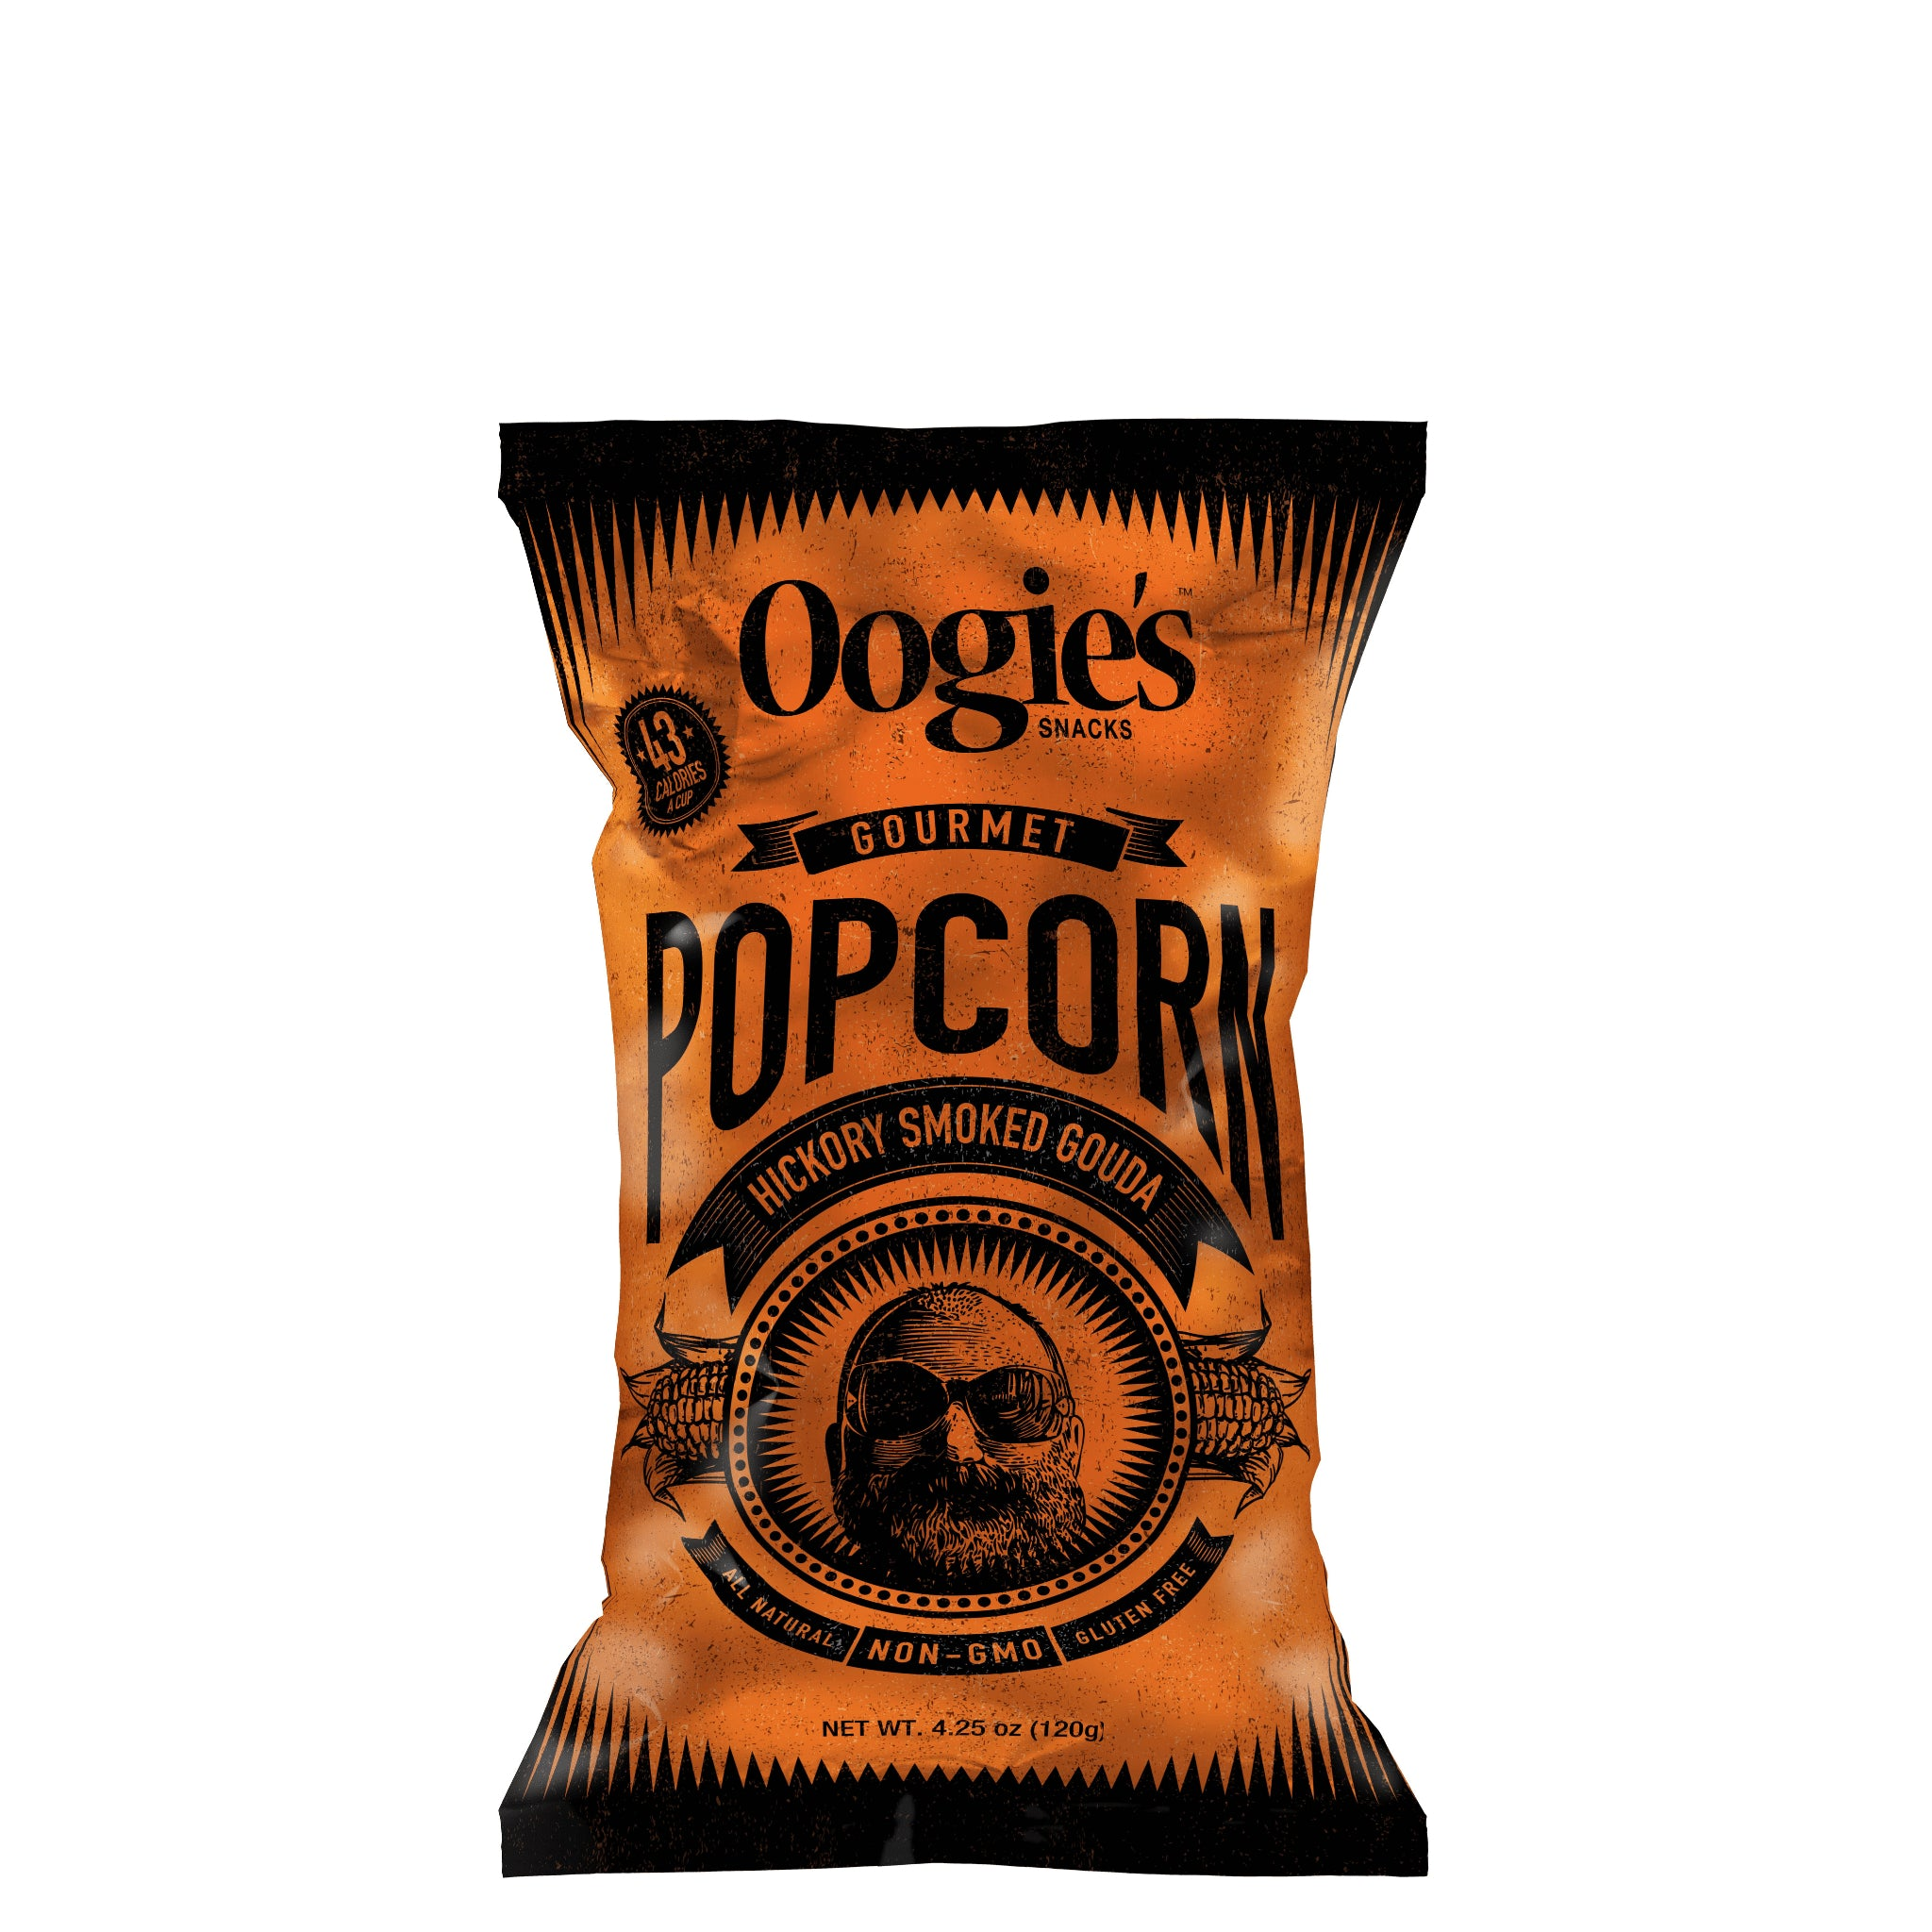 Hickory smoked gouda popcorn bag